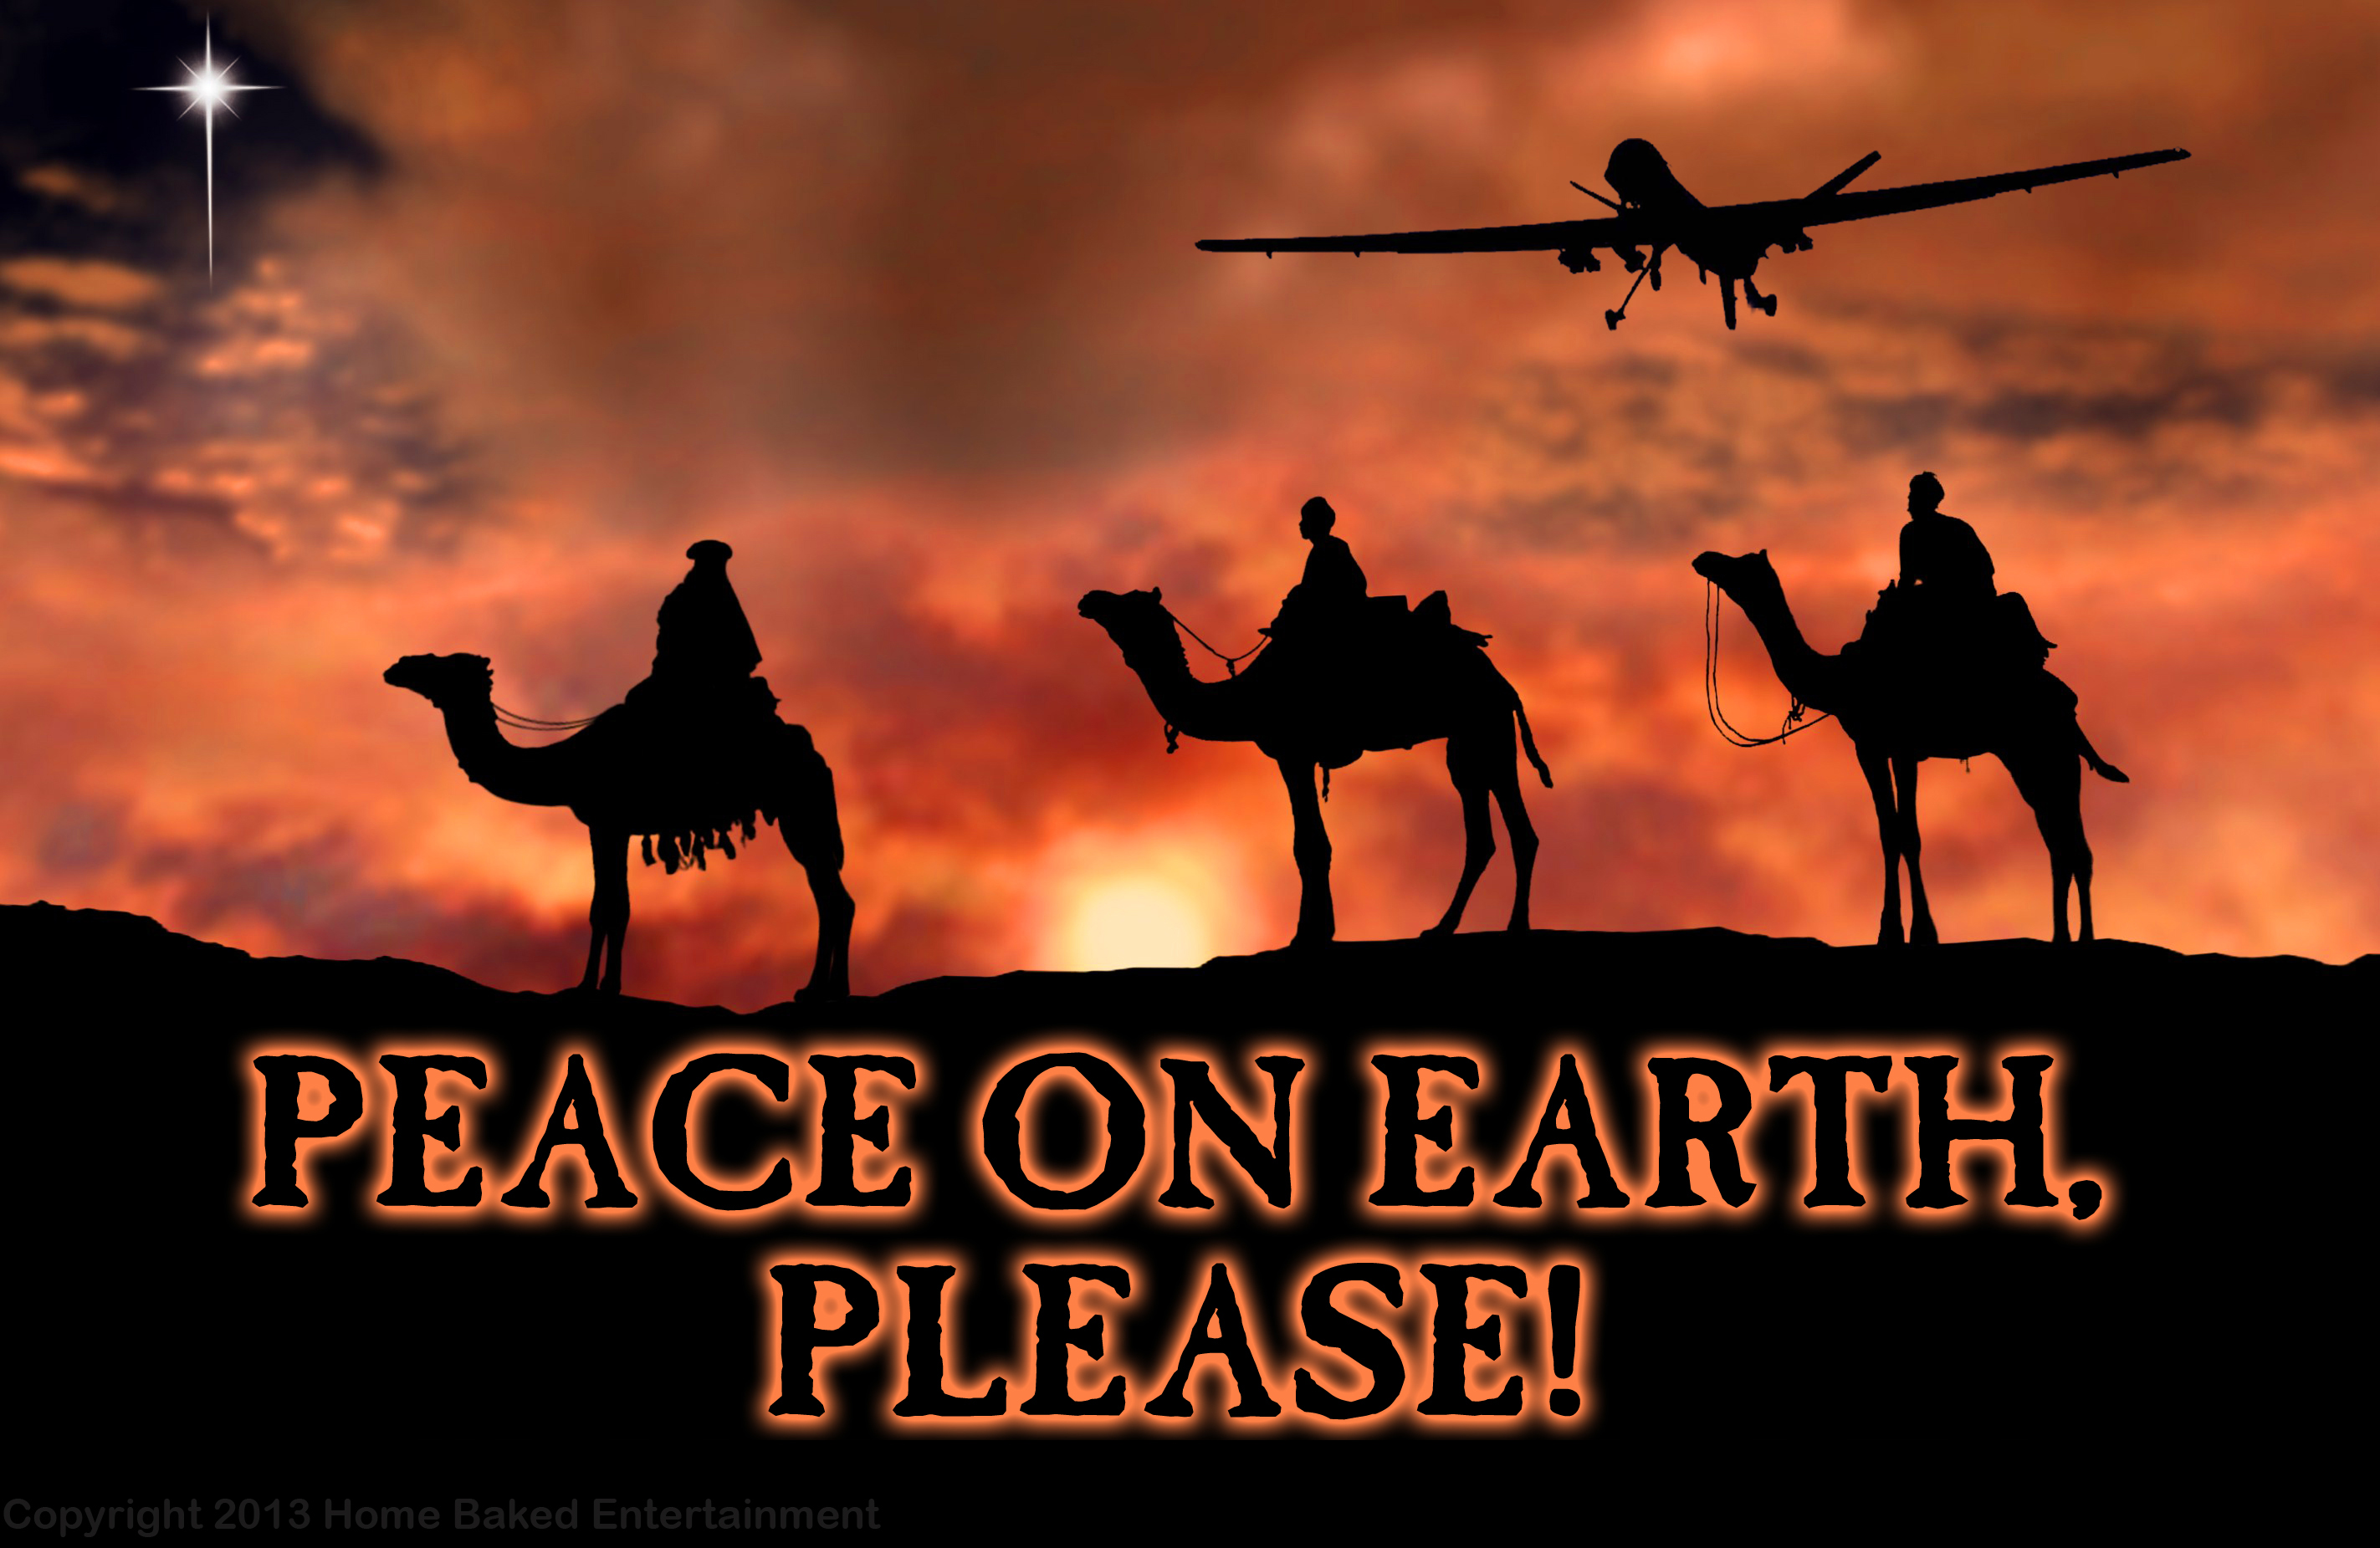 MERRY CHRISTMAS AND HOPES FOR PEACE ON EARTH | Desertpeace